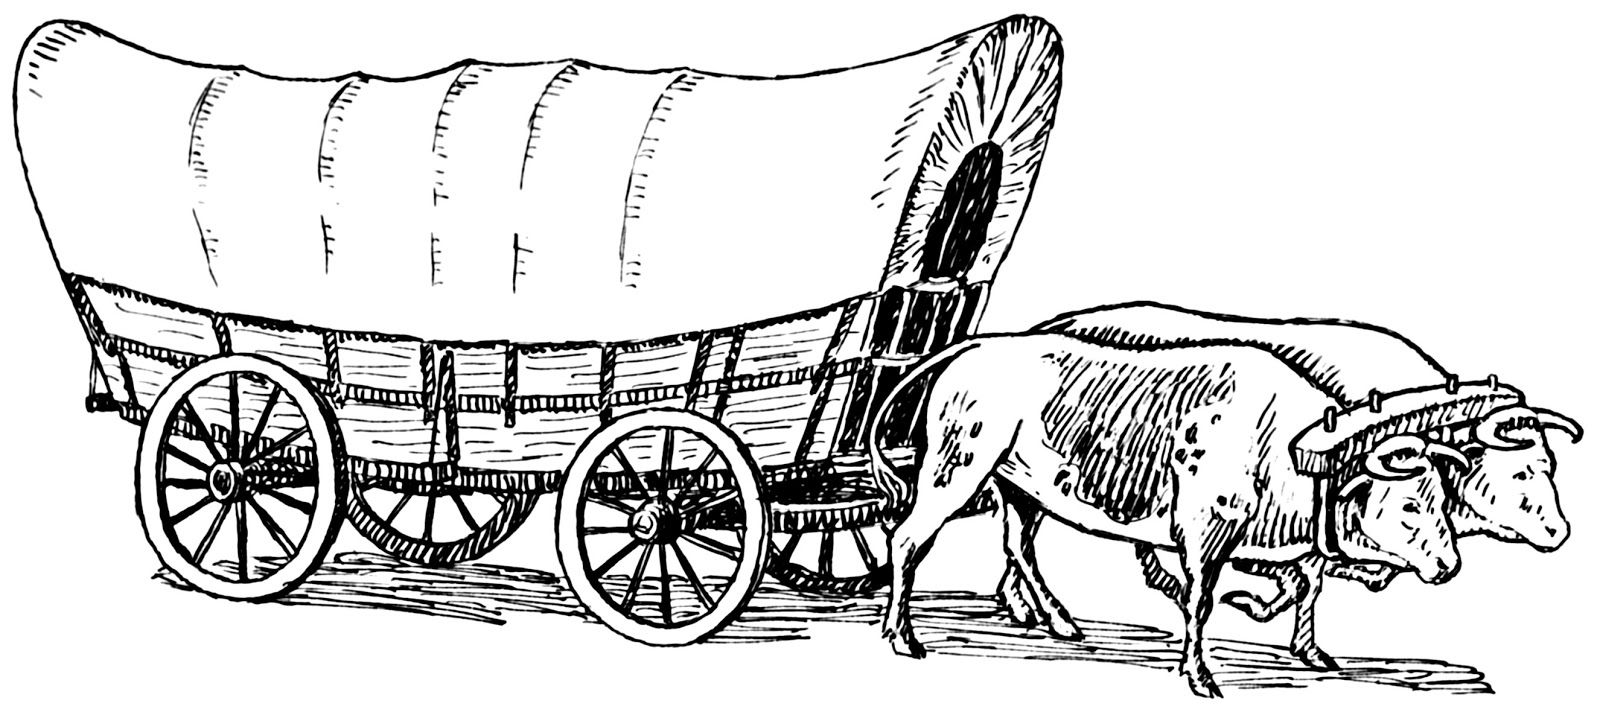 two oxen conastoga wagon sketch | ... West History: The Prairie ...